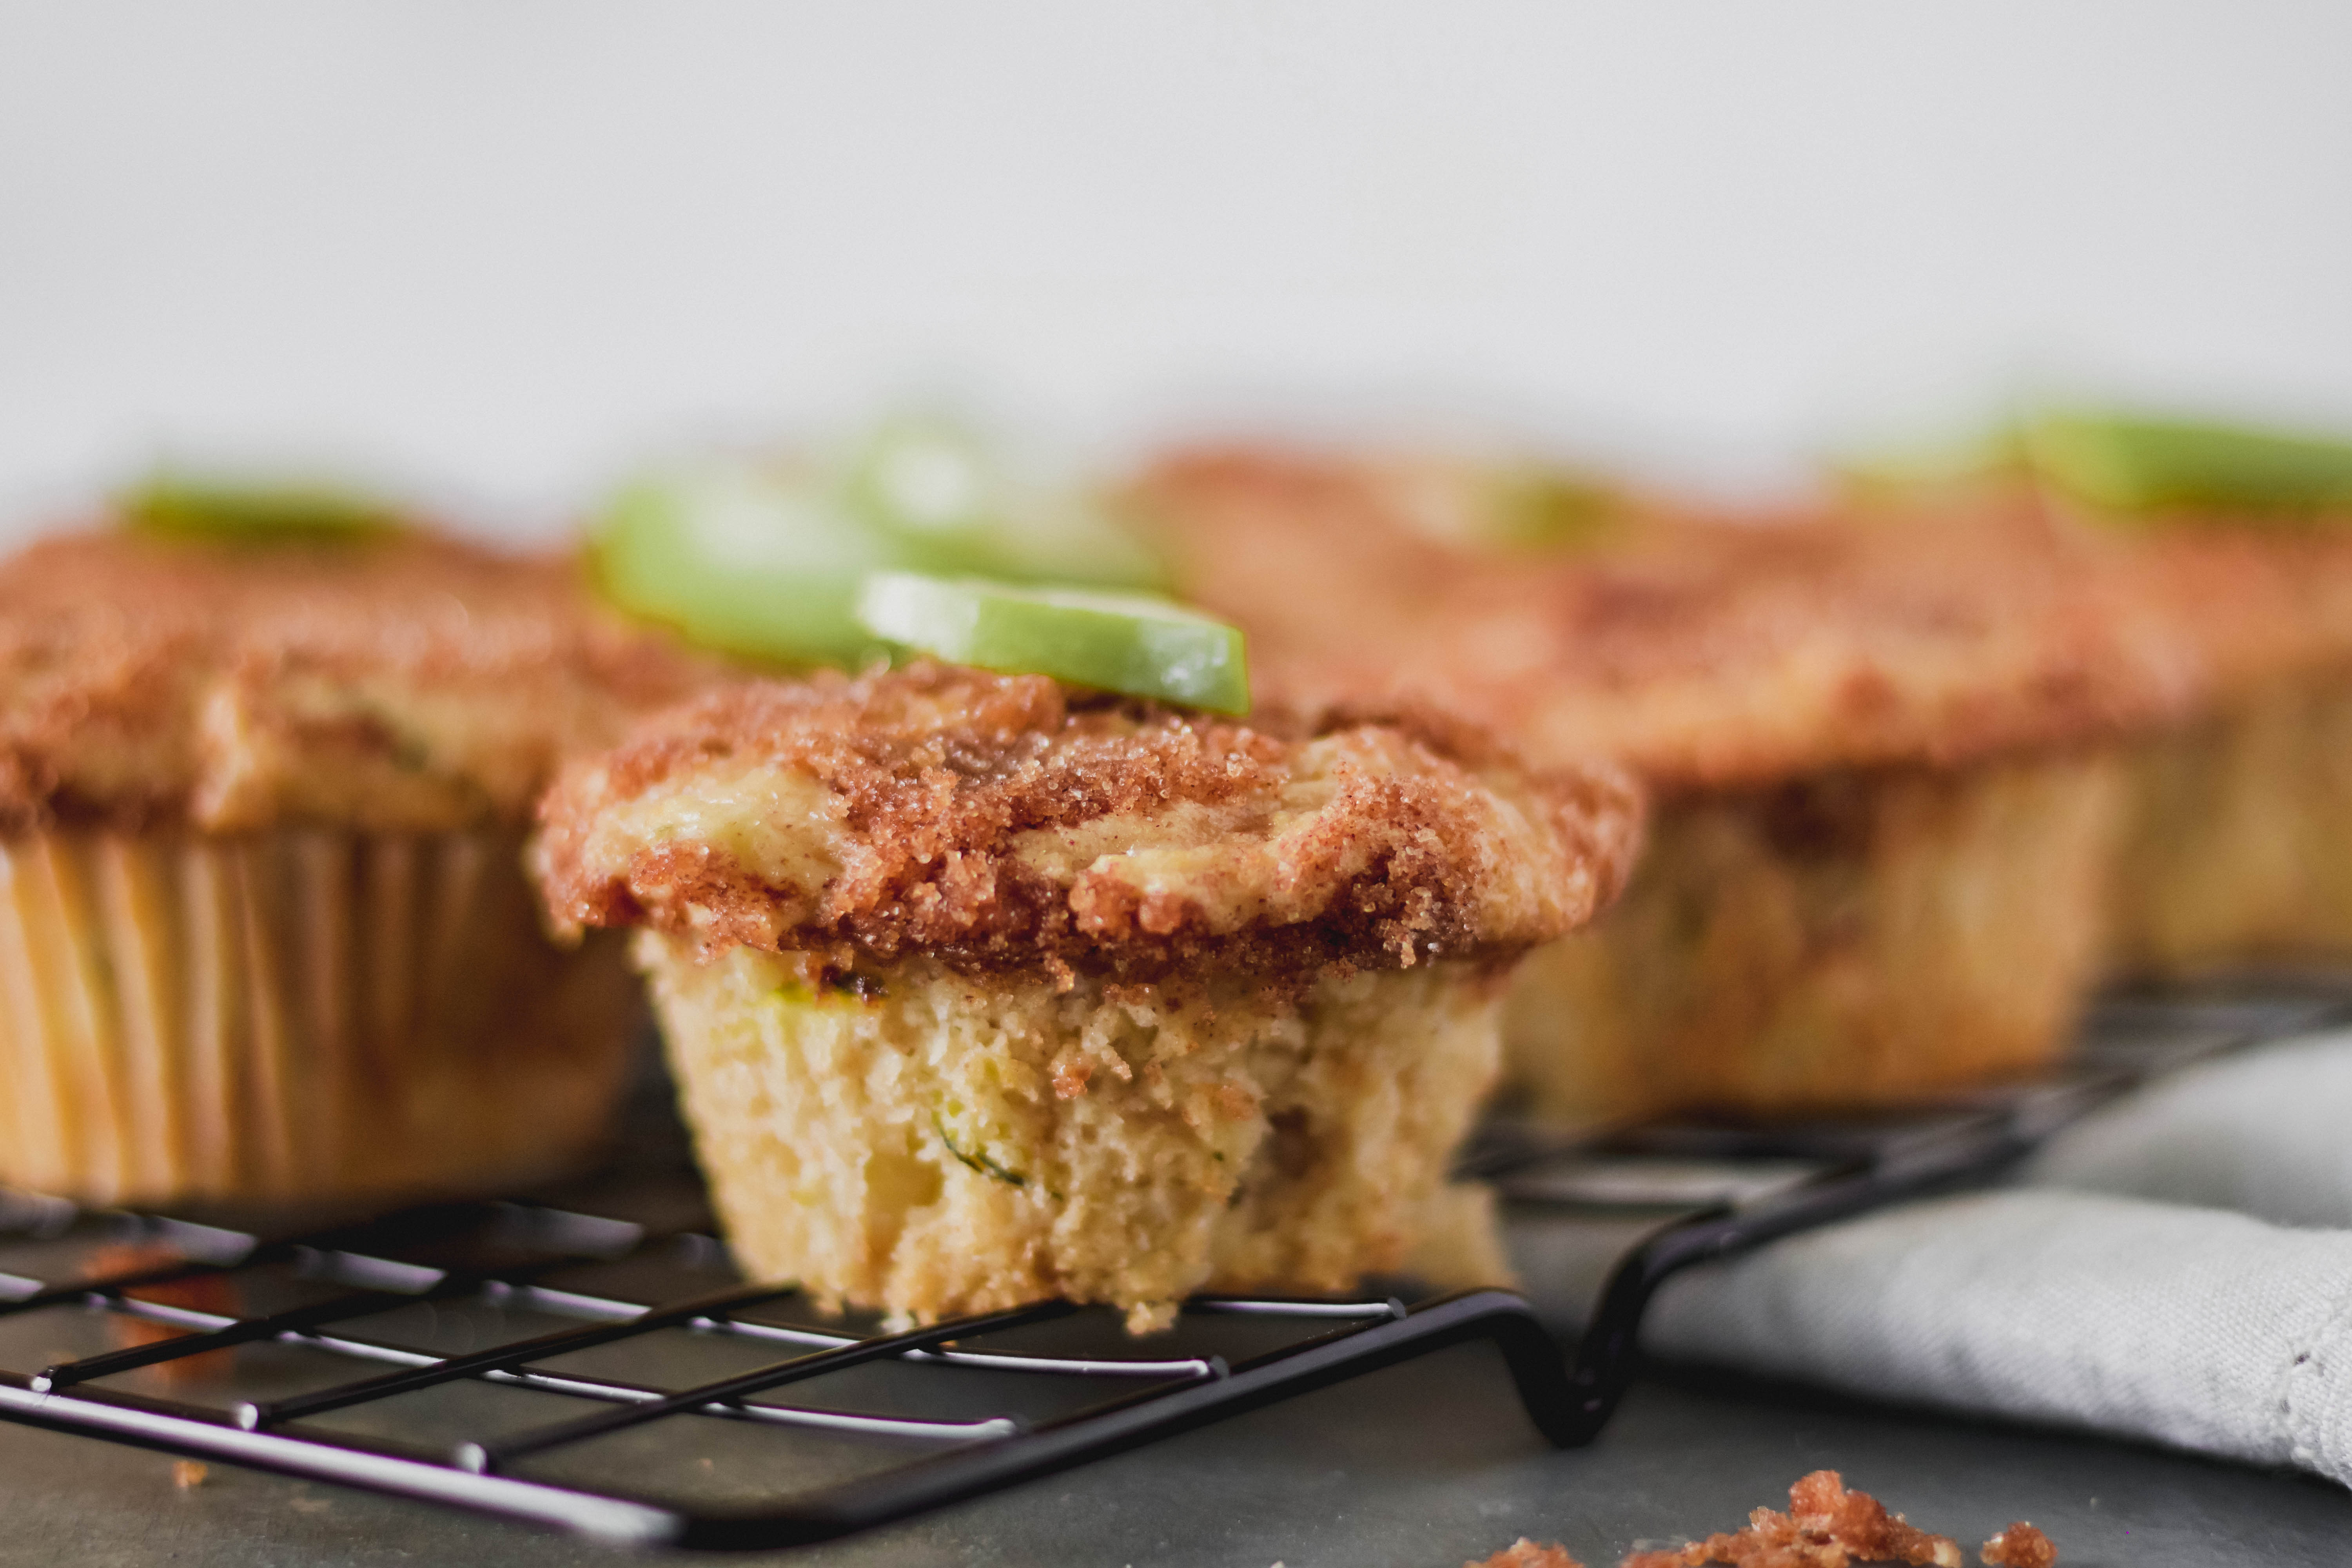 Apple Cinnamon Zucchini Muffins With Cinnamon Crumb Topping-1